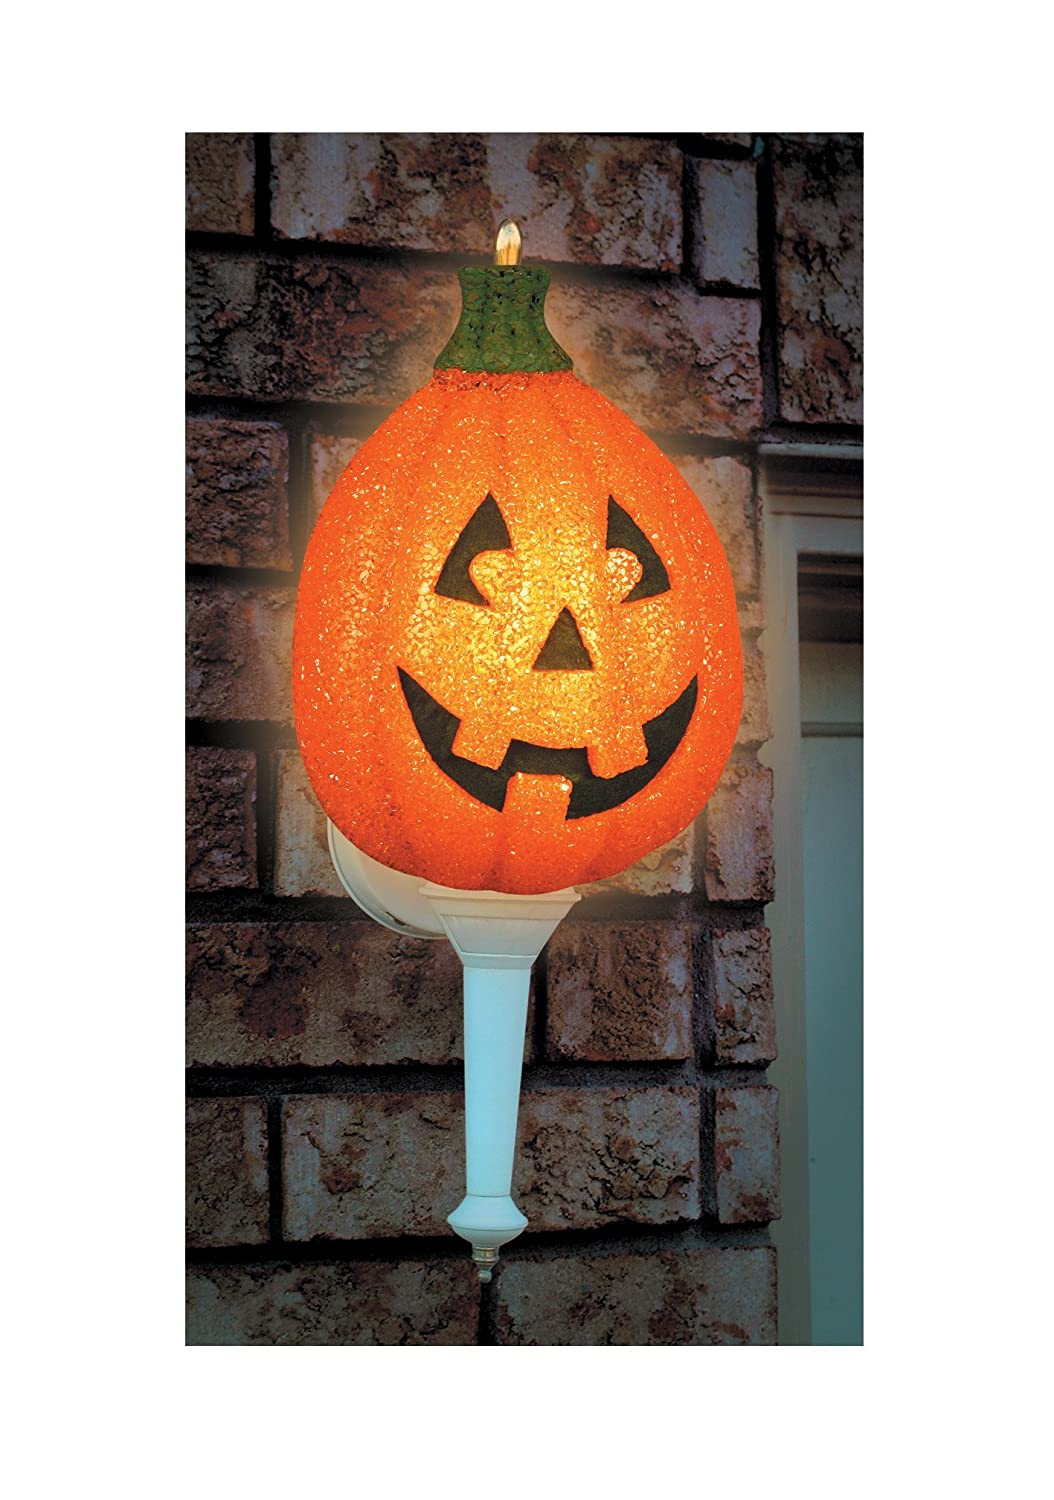 Toys & Hobbies Novelty & Gag Toys Holiday Halloween Orange Light Pumpkin Glow Stick Ghost Decoration Toys For Children Party Home Party Decorative Night Luminous Street Price